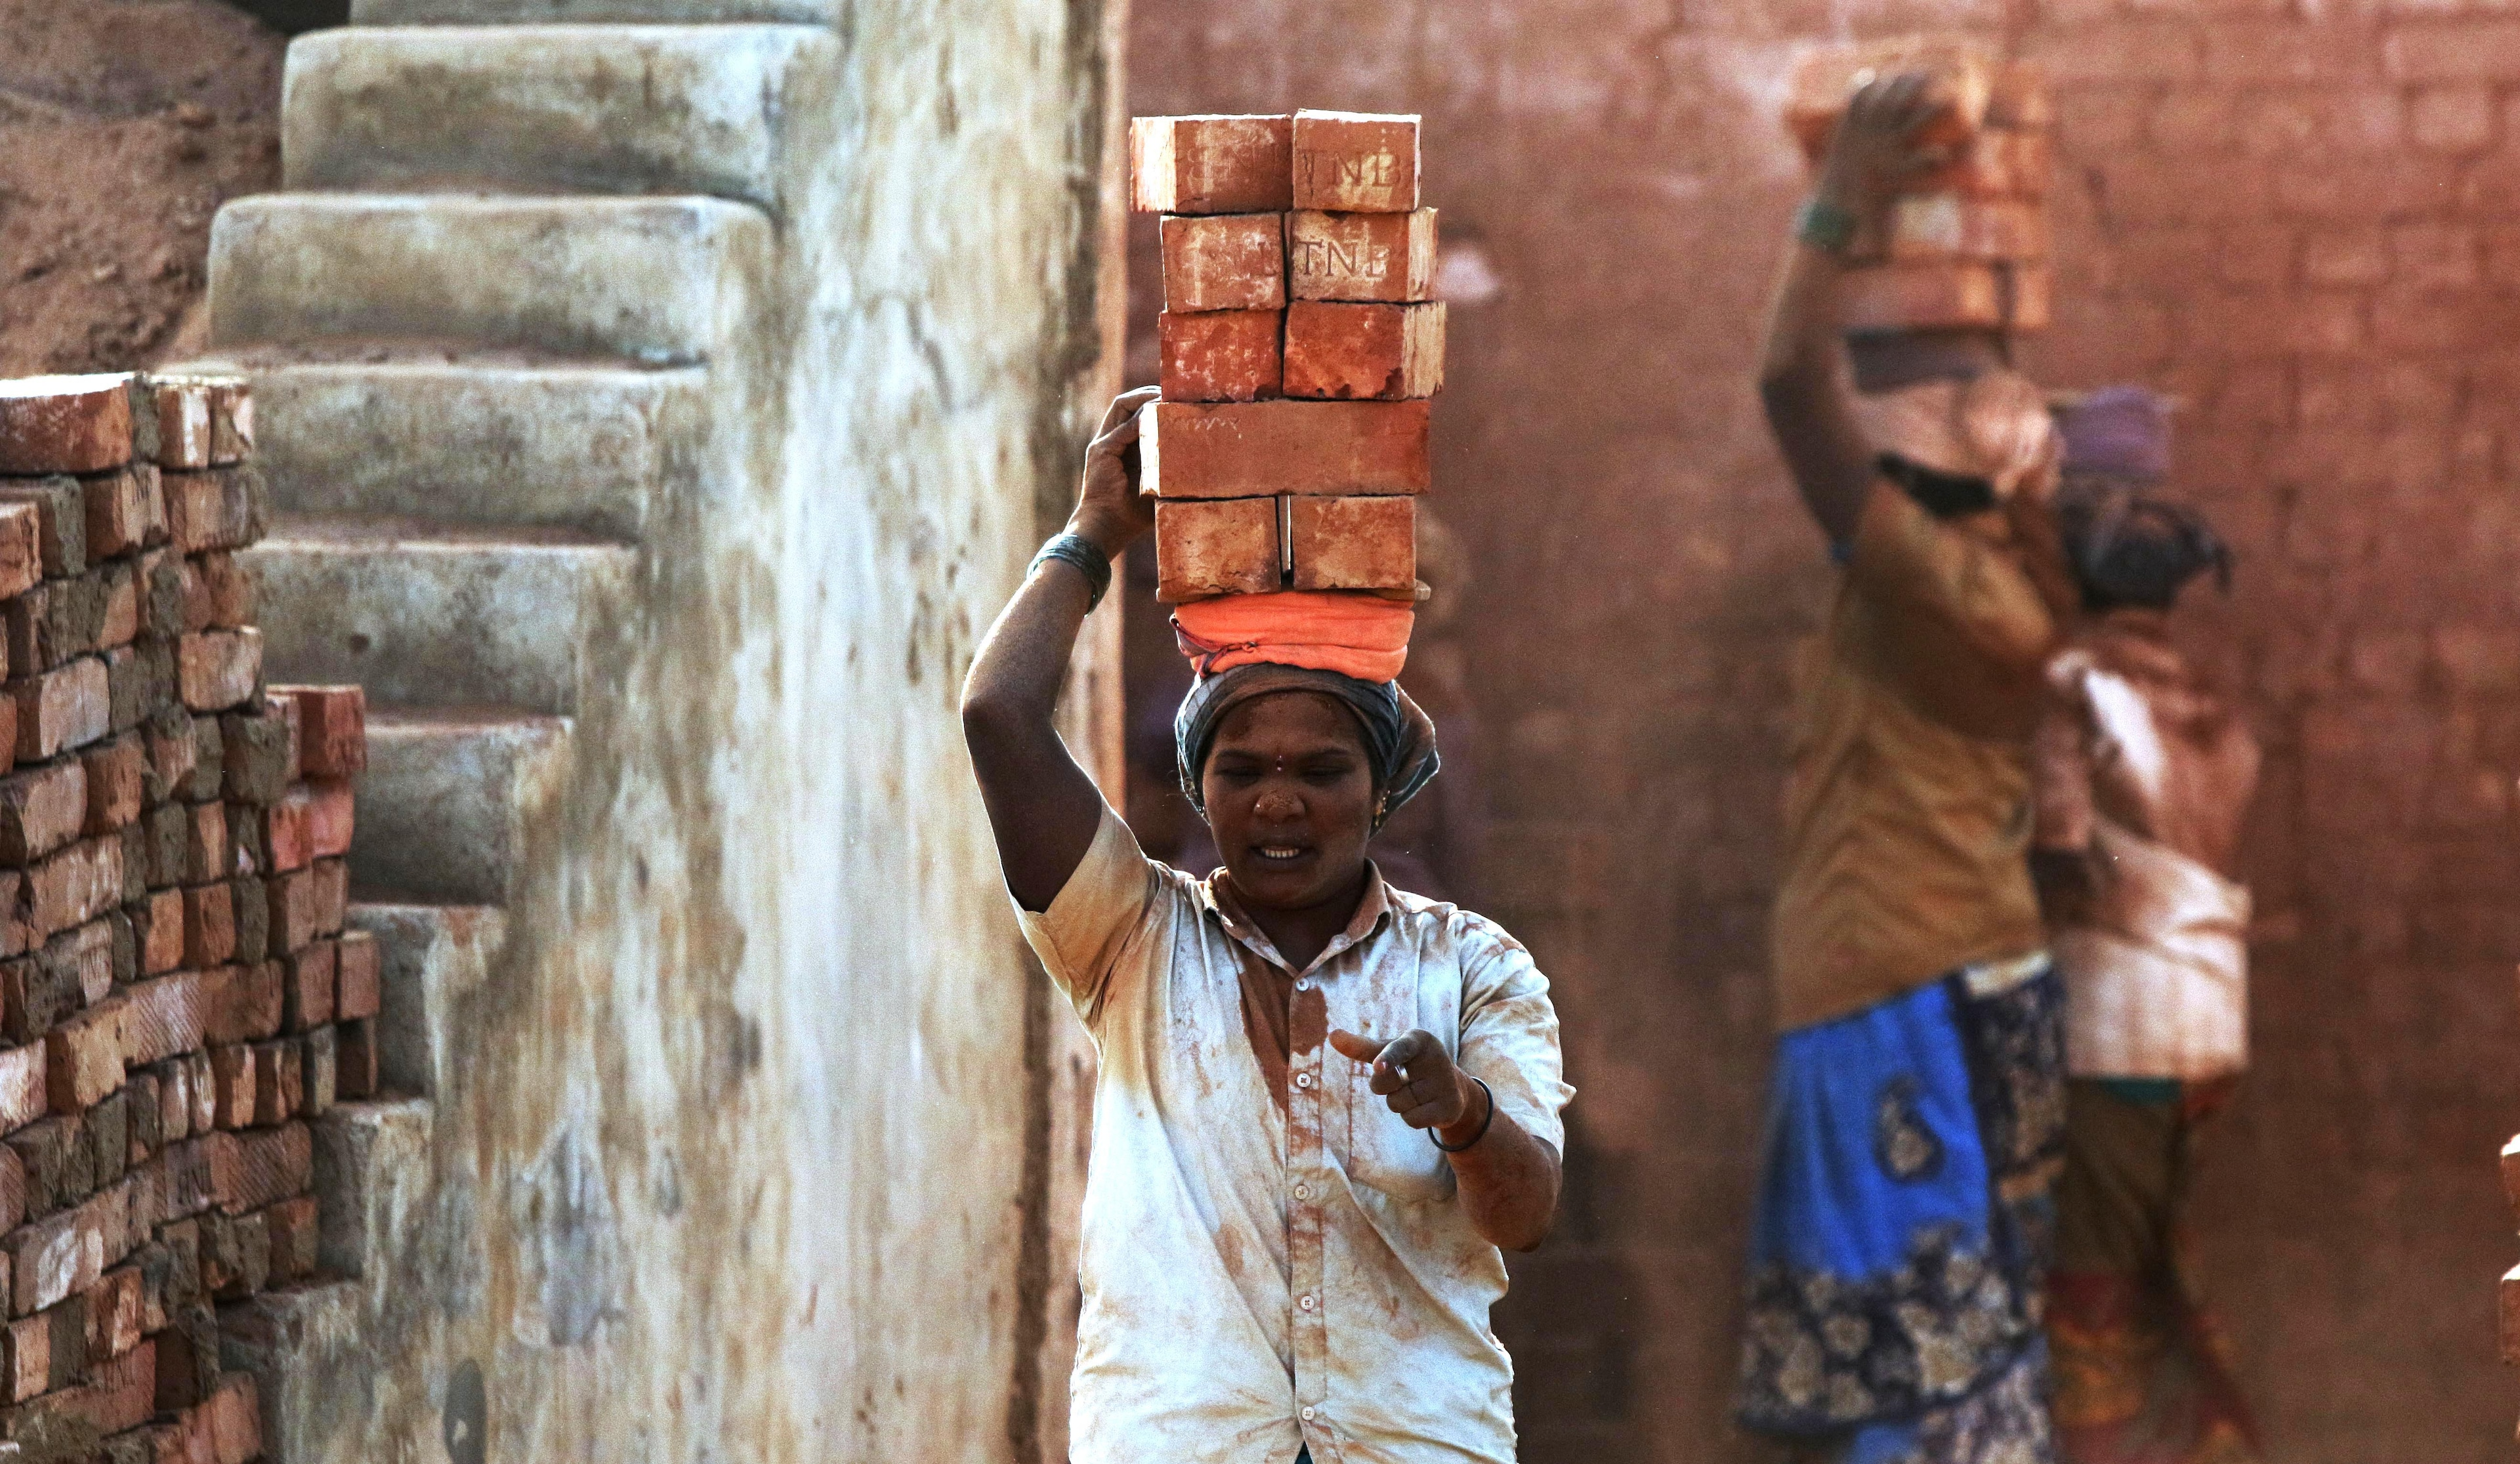 A woman labourer carries bricks at a brick kiln after relaxation in the 5th lockdown, in Chennai on Thursday.